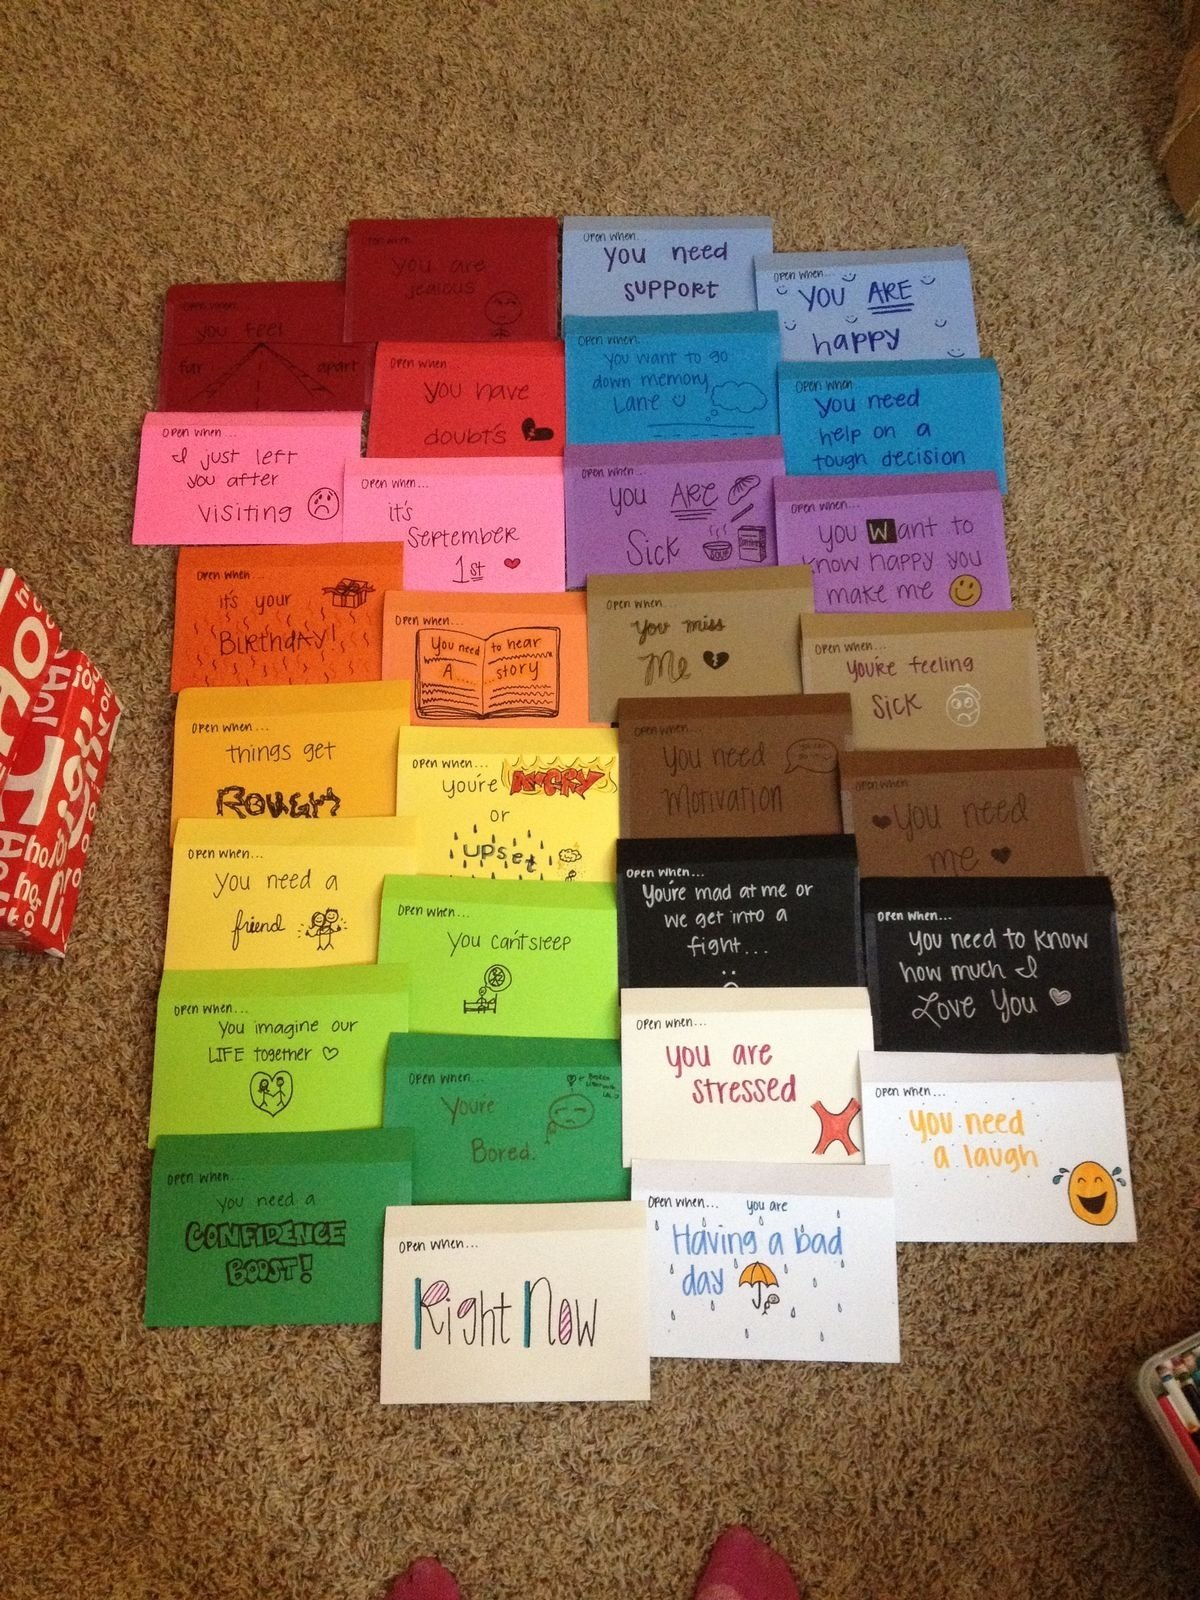 10 Elegant Cute Birthday Ideas For Him 35 inspiring open when letters madeyou gift relationships and